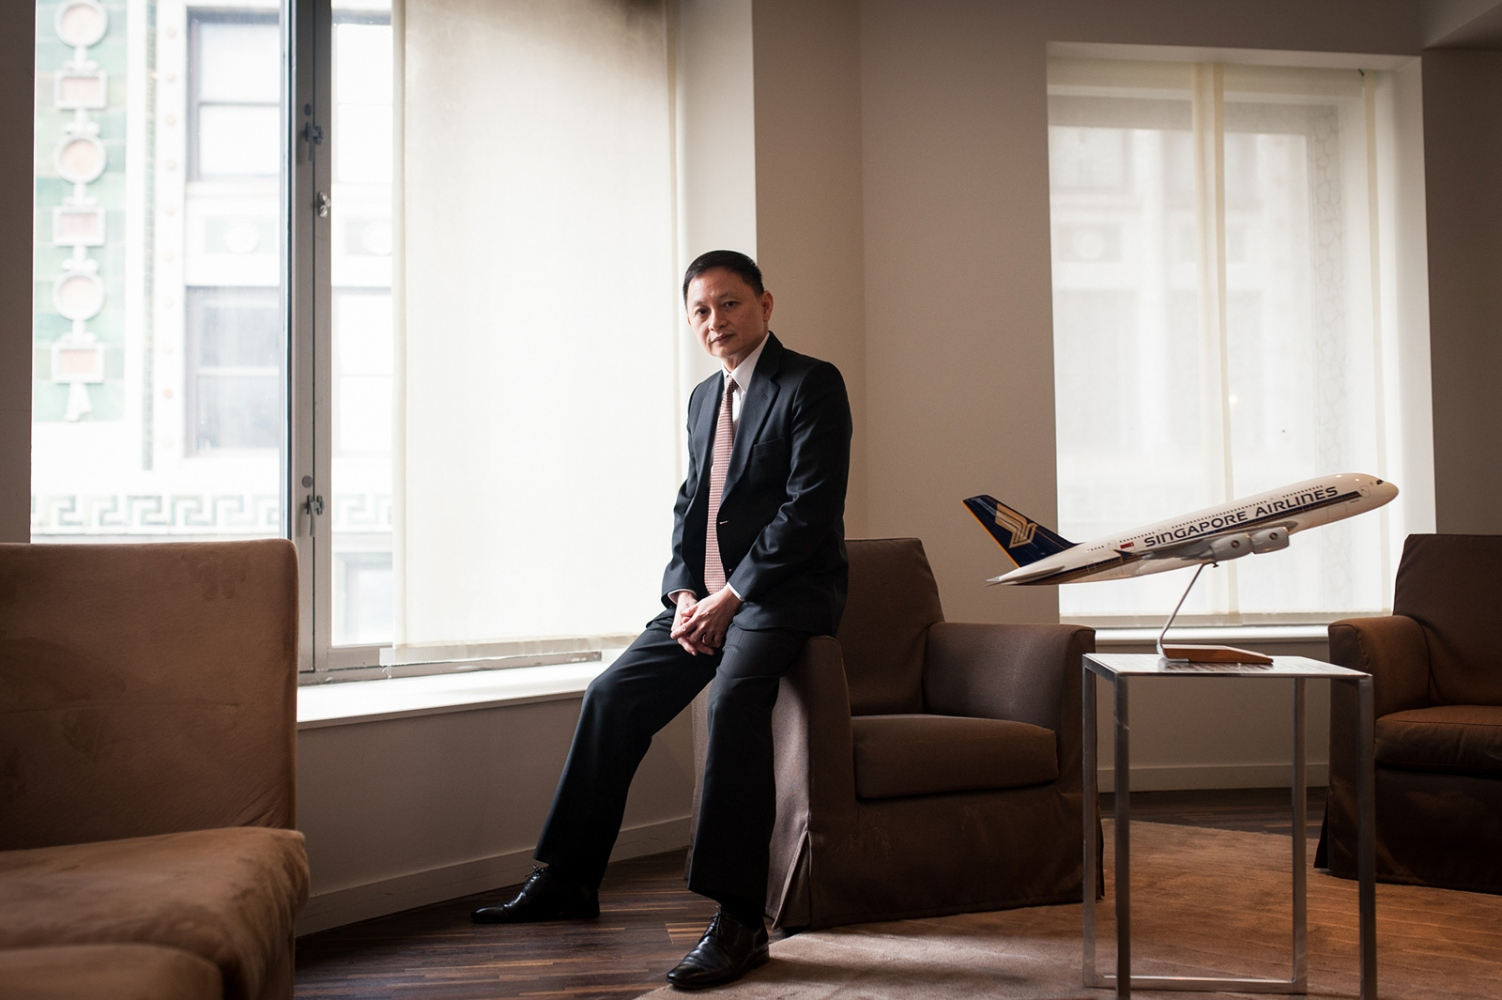 Singapore Airlines Chief Executive Officer Goh Choon Phong at the Andaz Hotel in New York City on Tuesday, Dec. 6, 2016. Photographed for Bloomberg